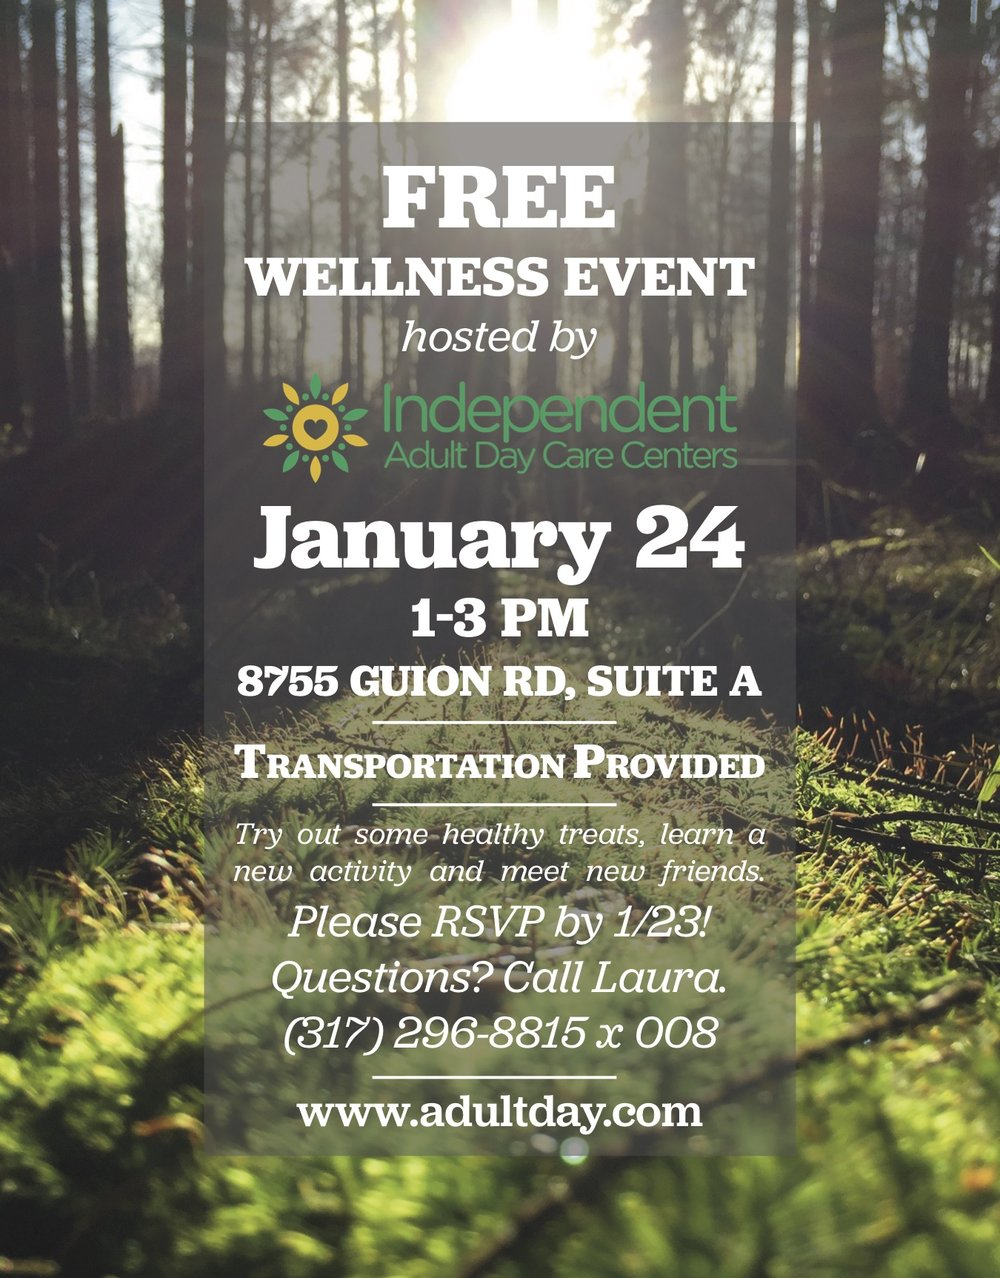 January Wellness Event Flyer Guion.jpg